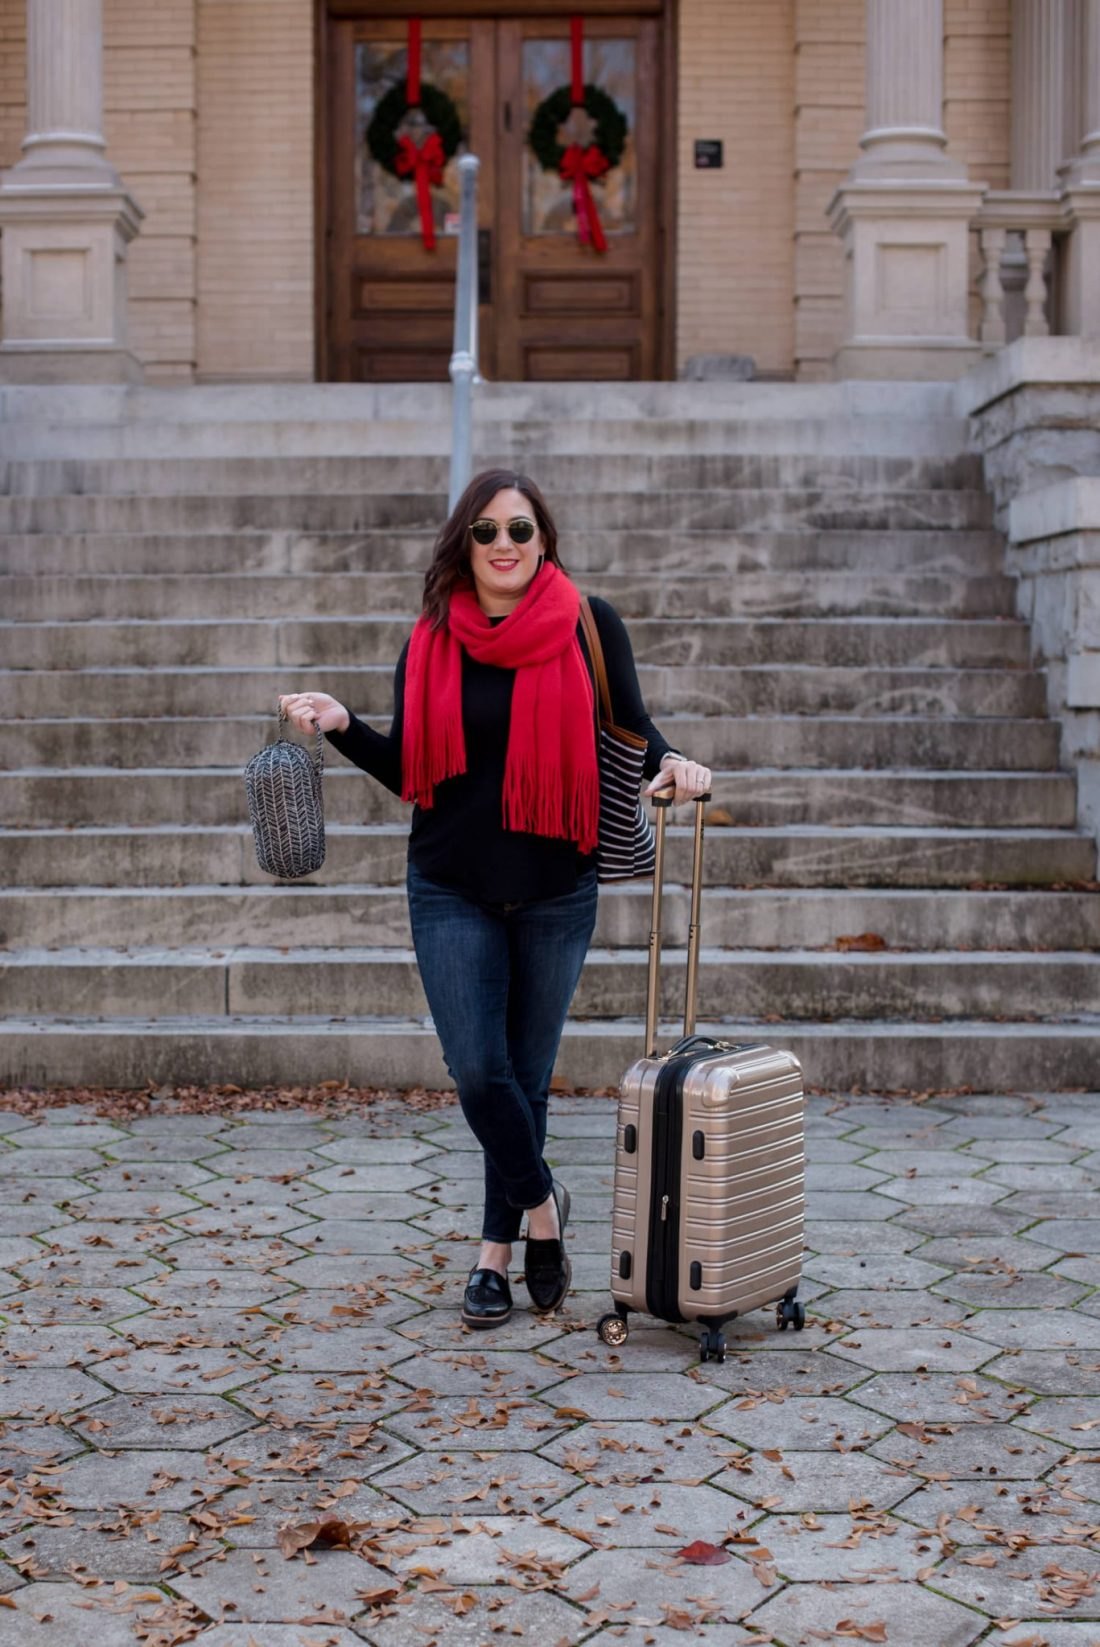 The Best Travel Gifts for Her // Miss Molly Moon